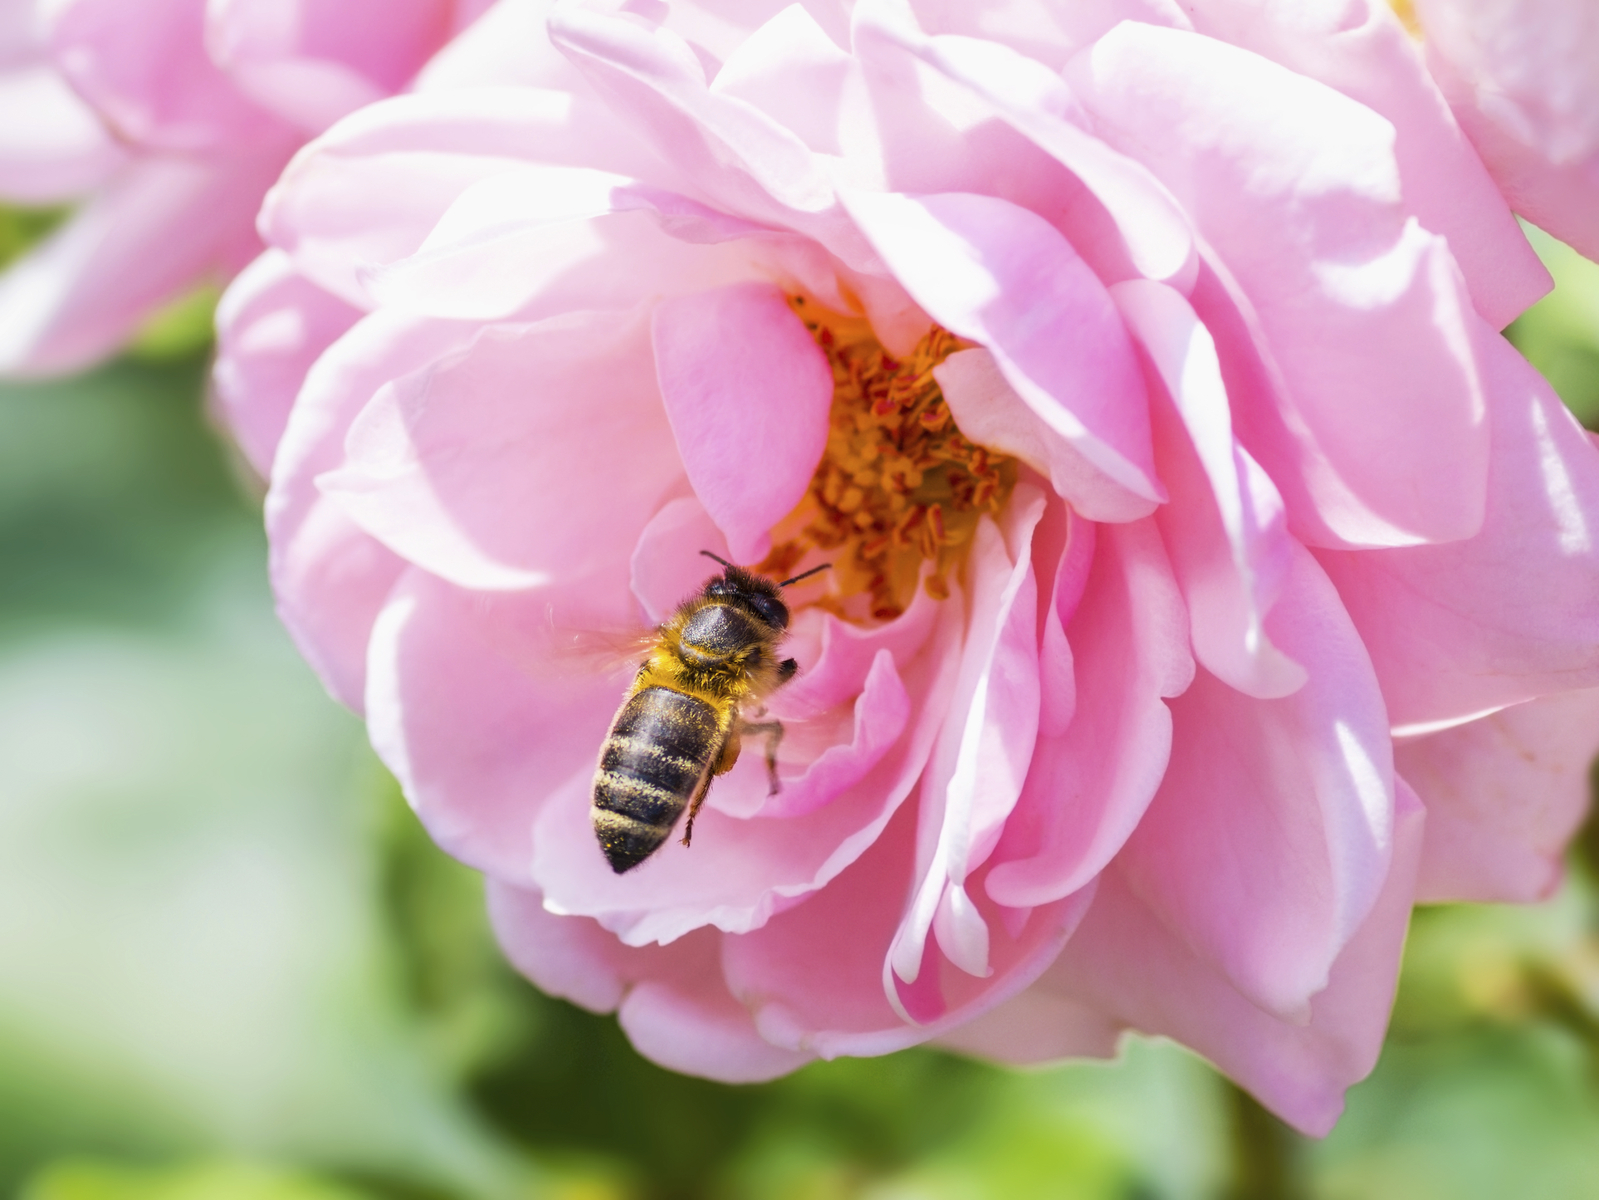 Honeybee-Pollinating-Pink-Rose-000089689433_Medium.jpg